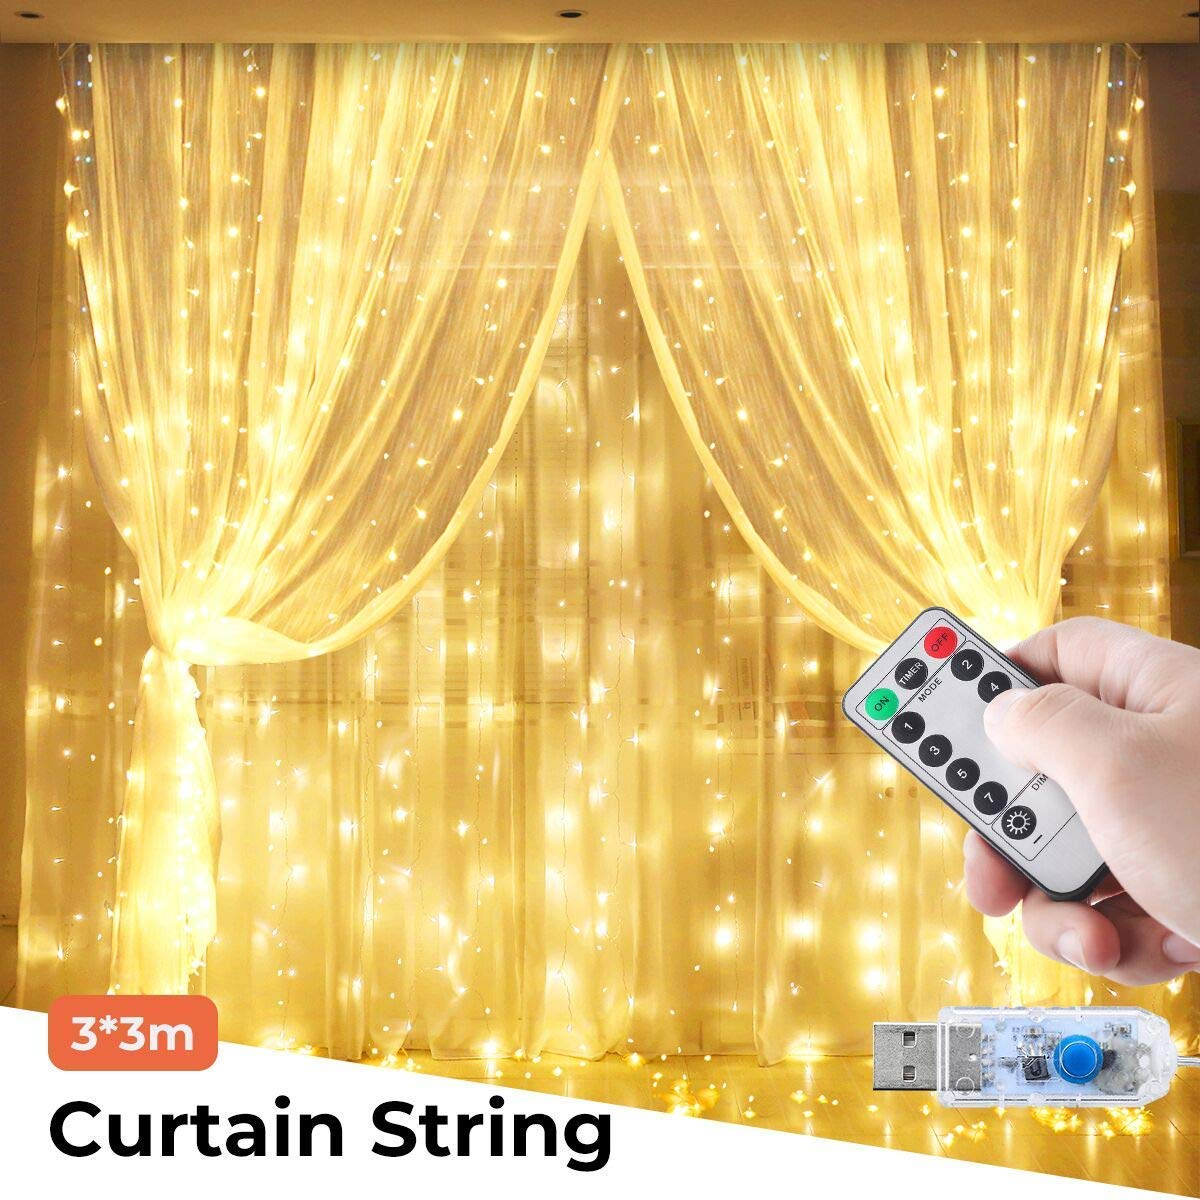 Curtain String Lights USB Powered Copper Wire Fairy Lights Remote 8 Modes Twinkle Lights for Christmas Tree Kids Bedroom Wedding Holiday Wall Decorations 300LEDs 8 Modes 9ft x 9ft Warm White